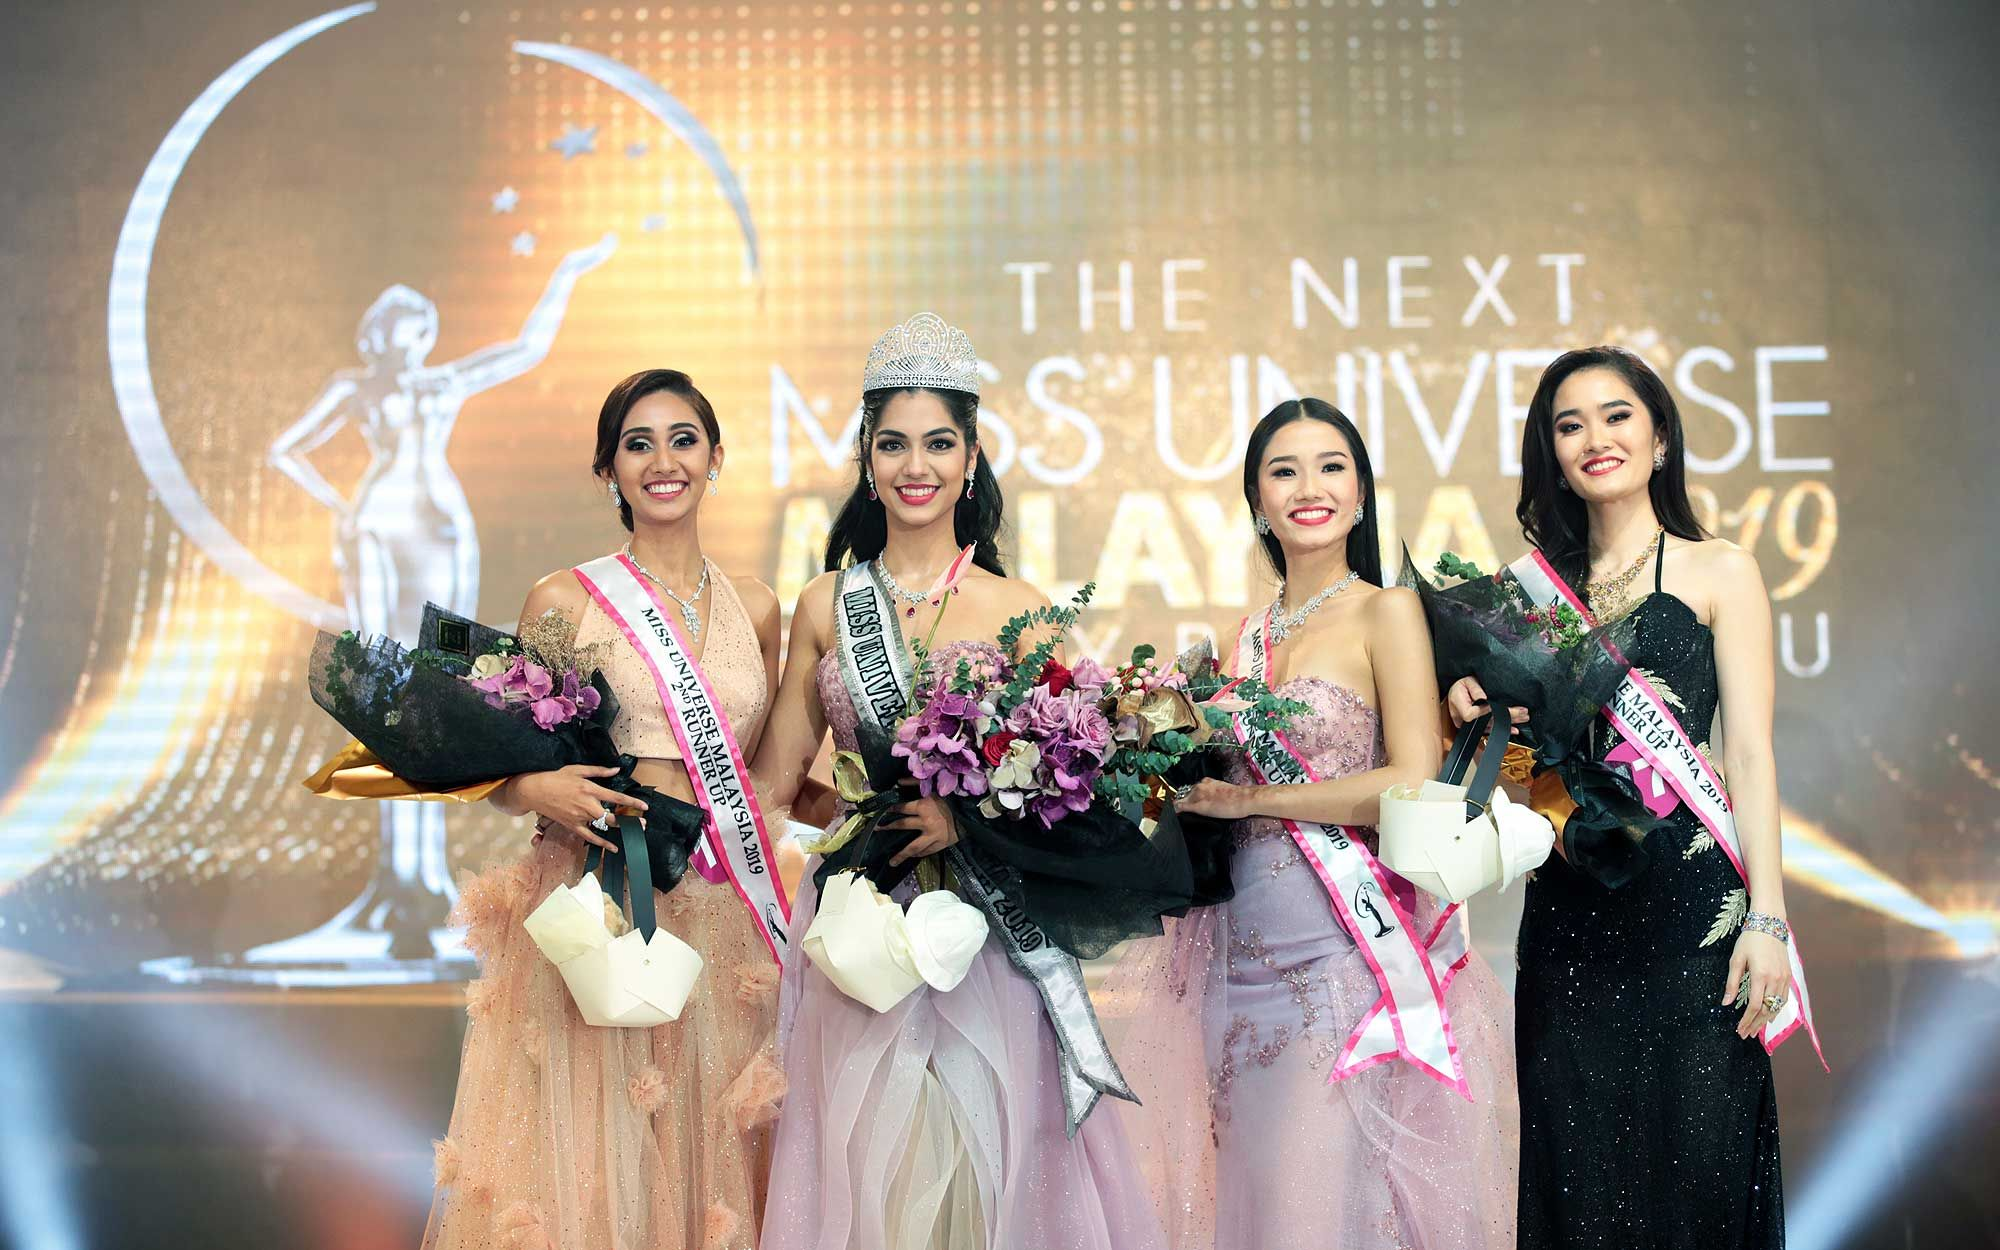 2nd Runner Up Tessminderjit Kaur, Miss Universe Malaysia 2019 Shweta Sekhon, 1st Runner Up Yaw Hui Jing (Frost Yaw) and 3rd Runner Up Lee Su Hsien